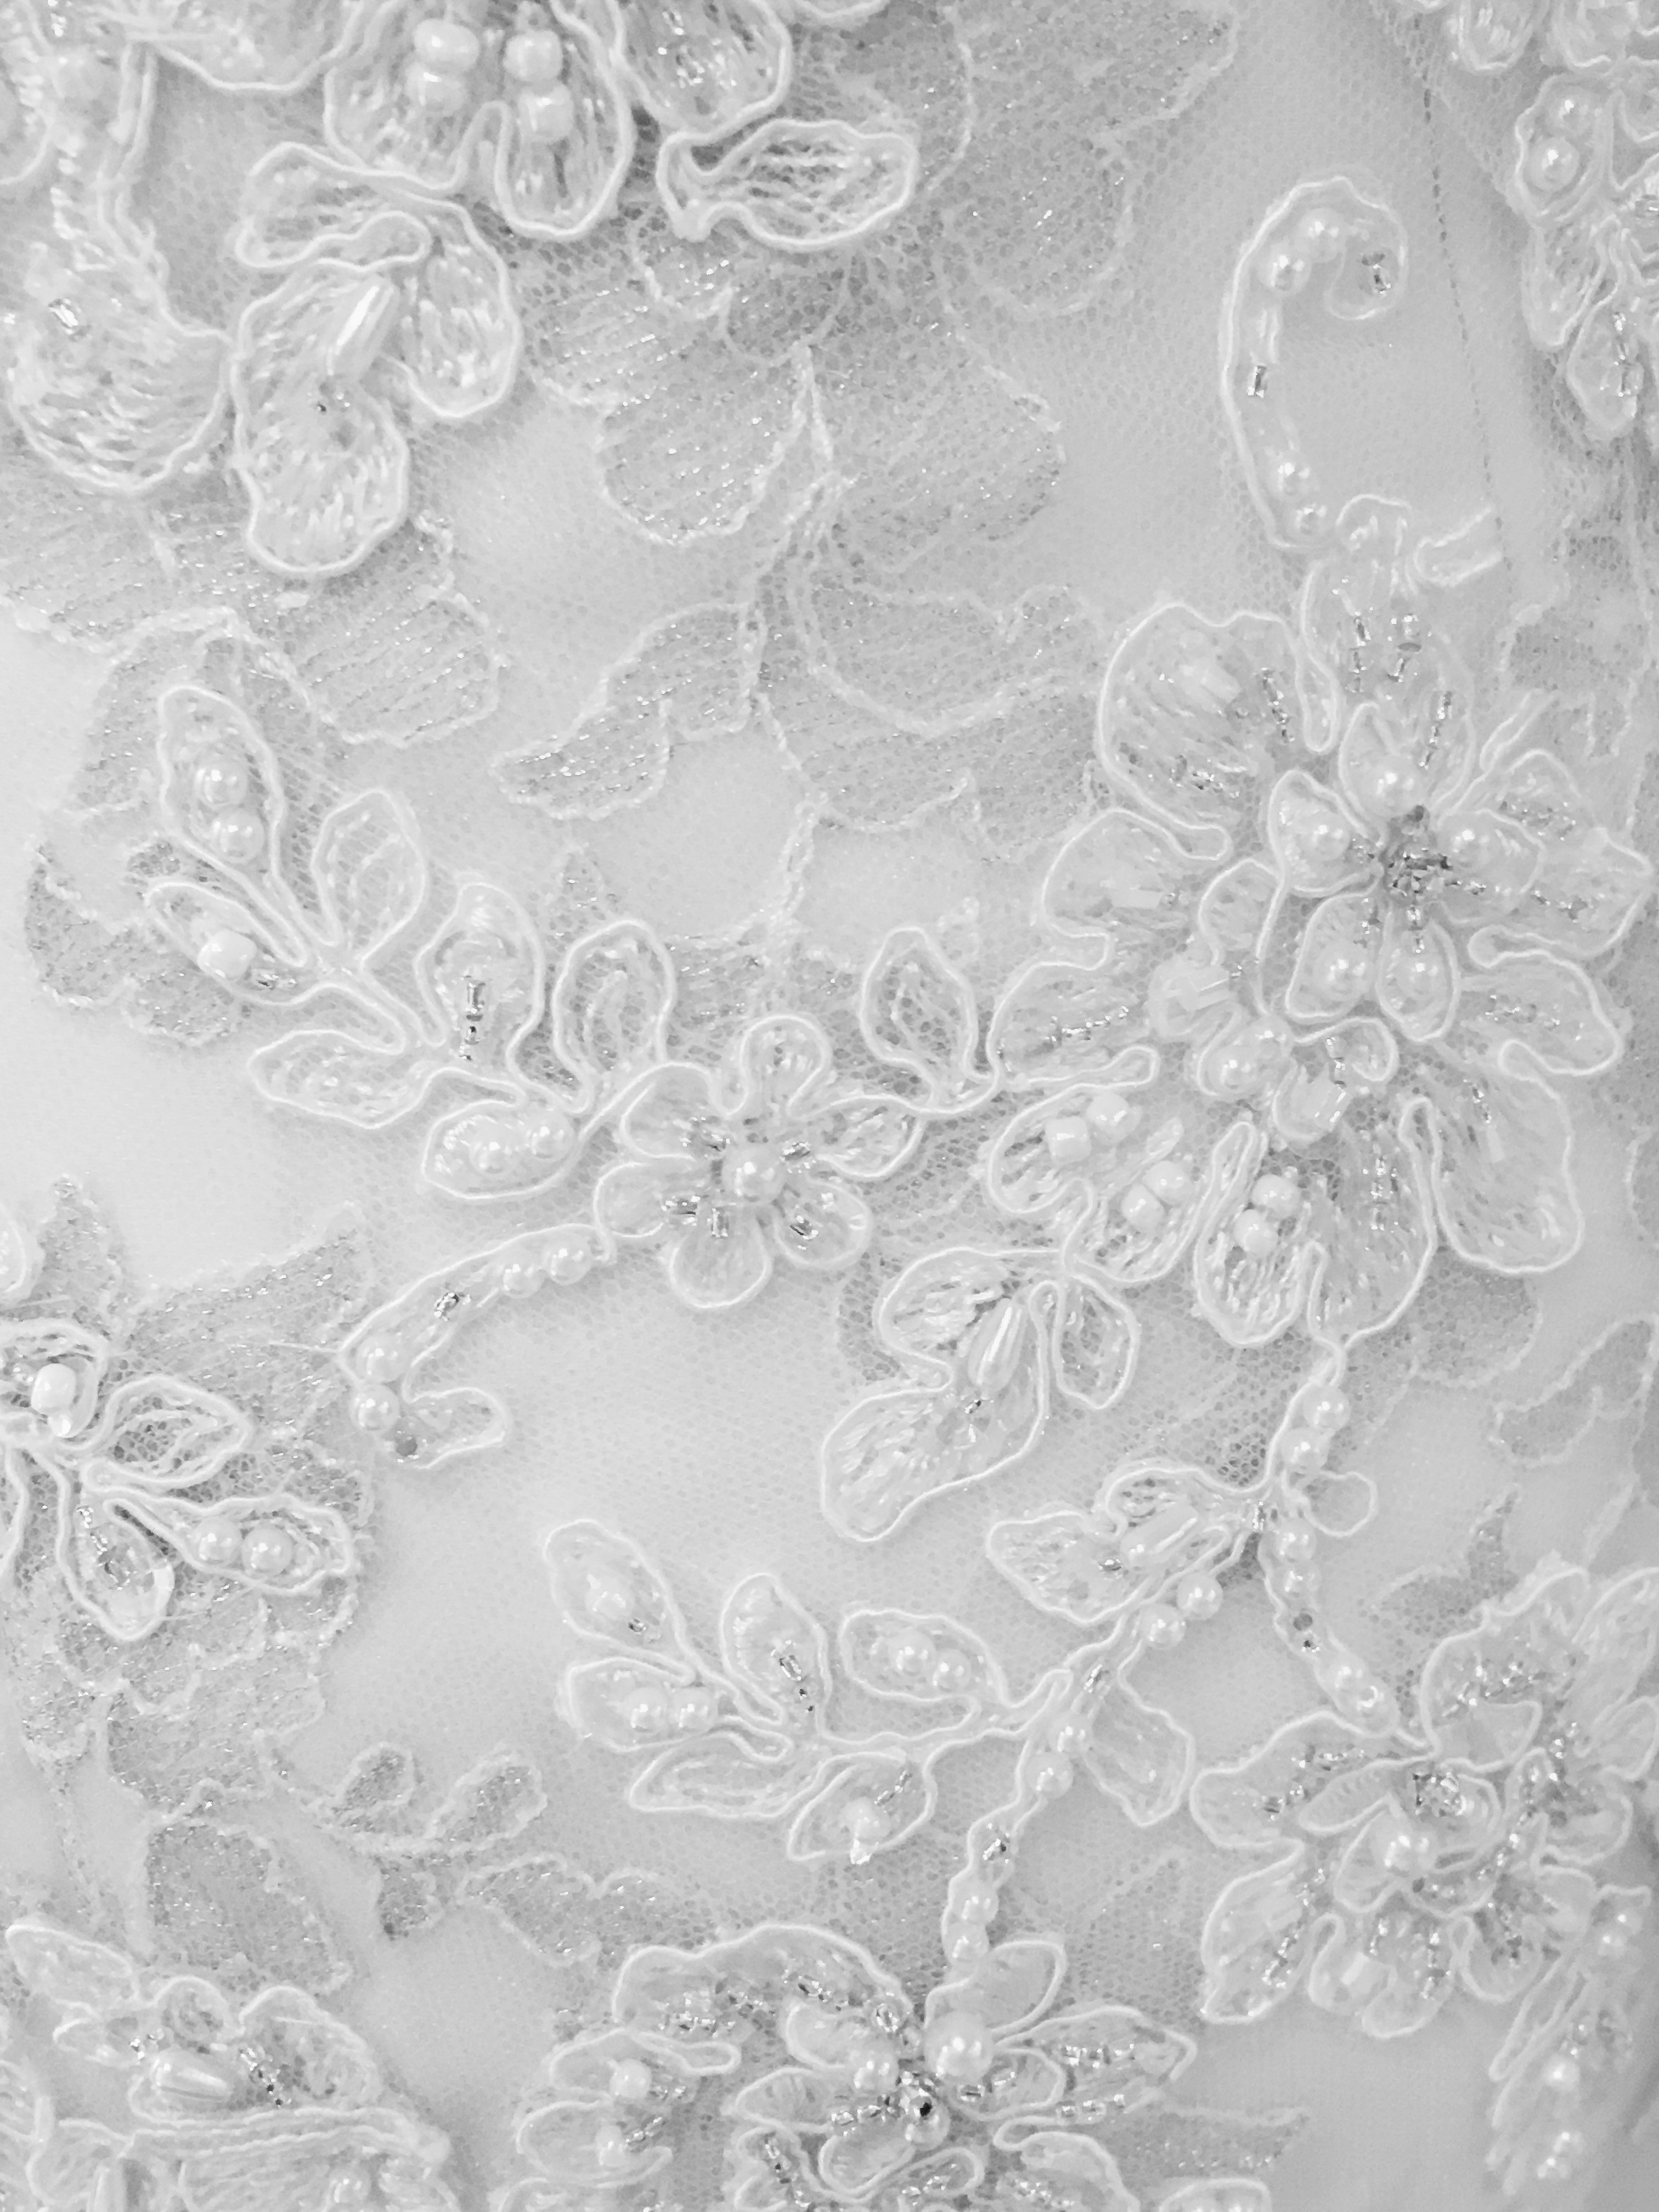 Bridal Gown Material